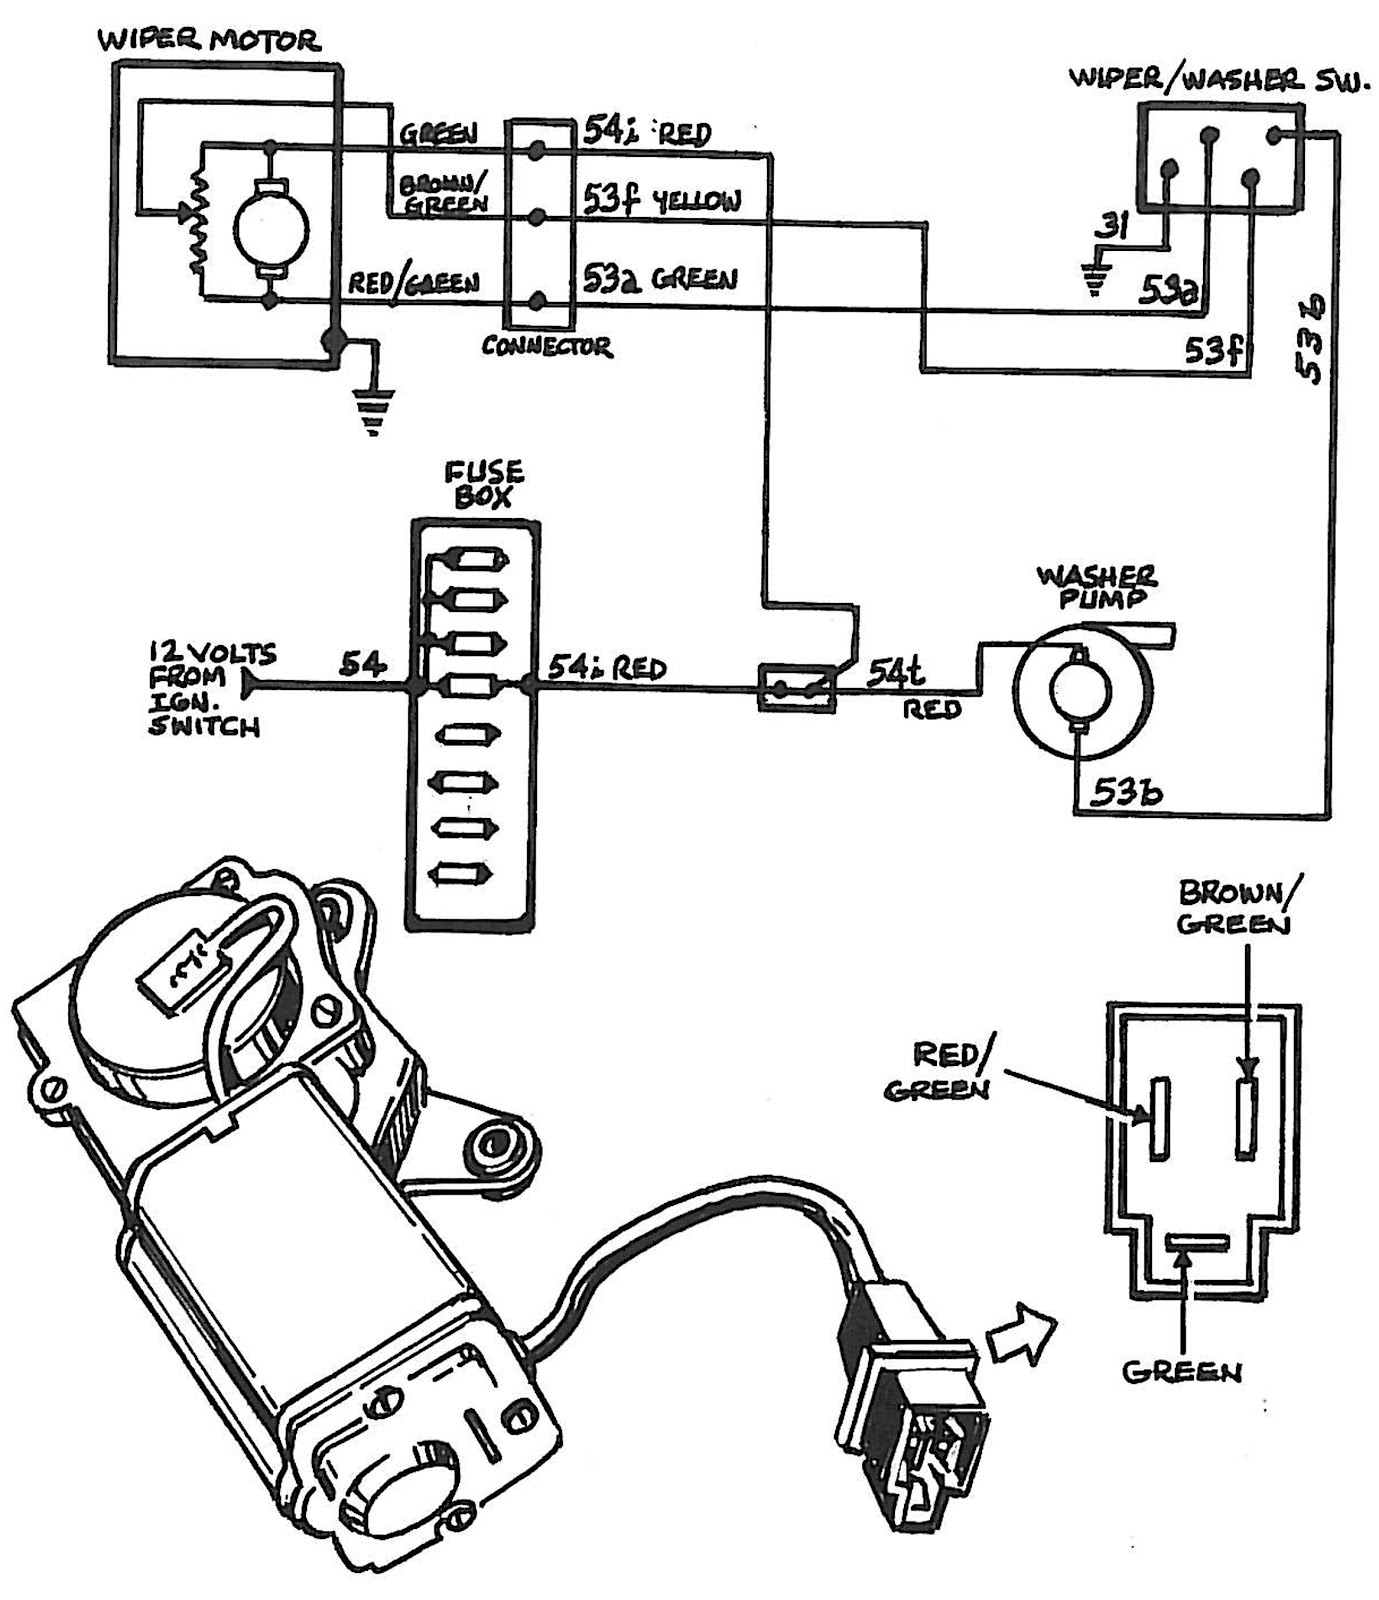 Early Windshield Wiper Motor Rebuild on Ignition Switch Wiring Diagram For 1985 Ford Ranger